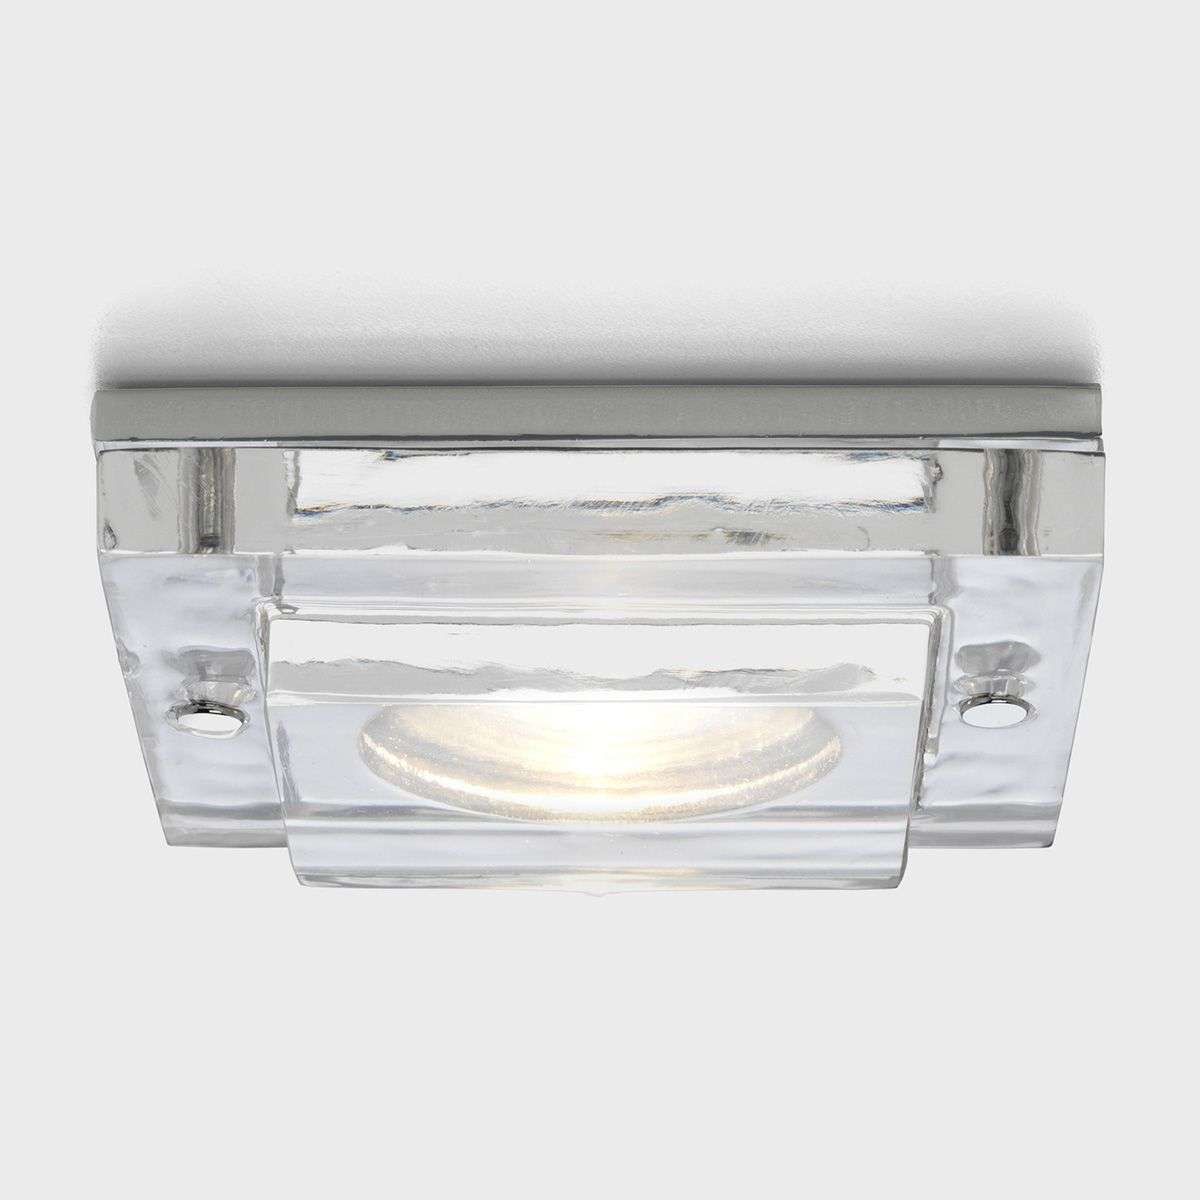 Mint Square Built-In Ceiling Light Square-1020117-32